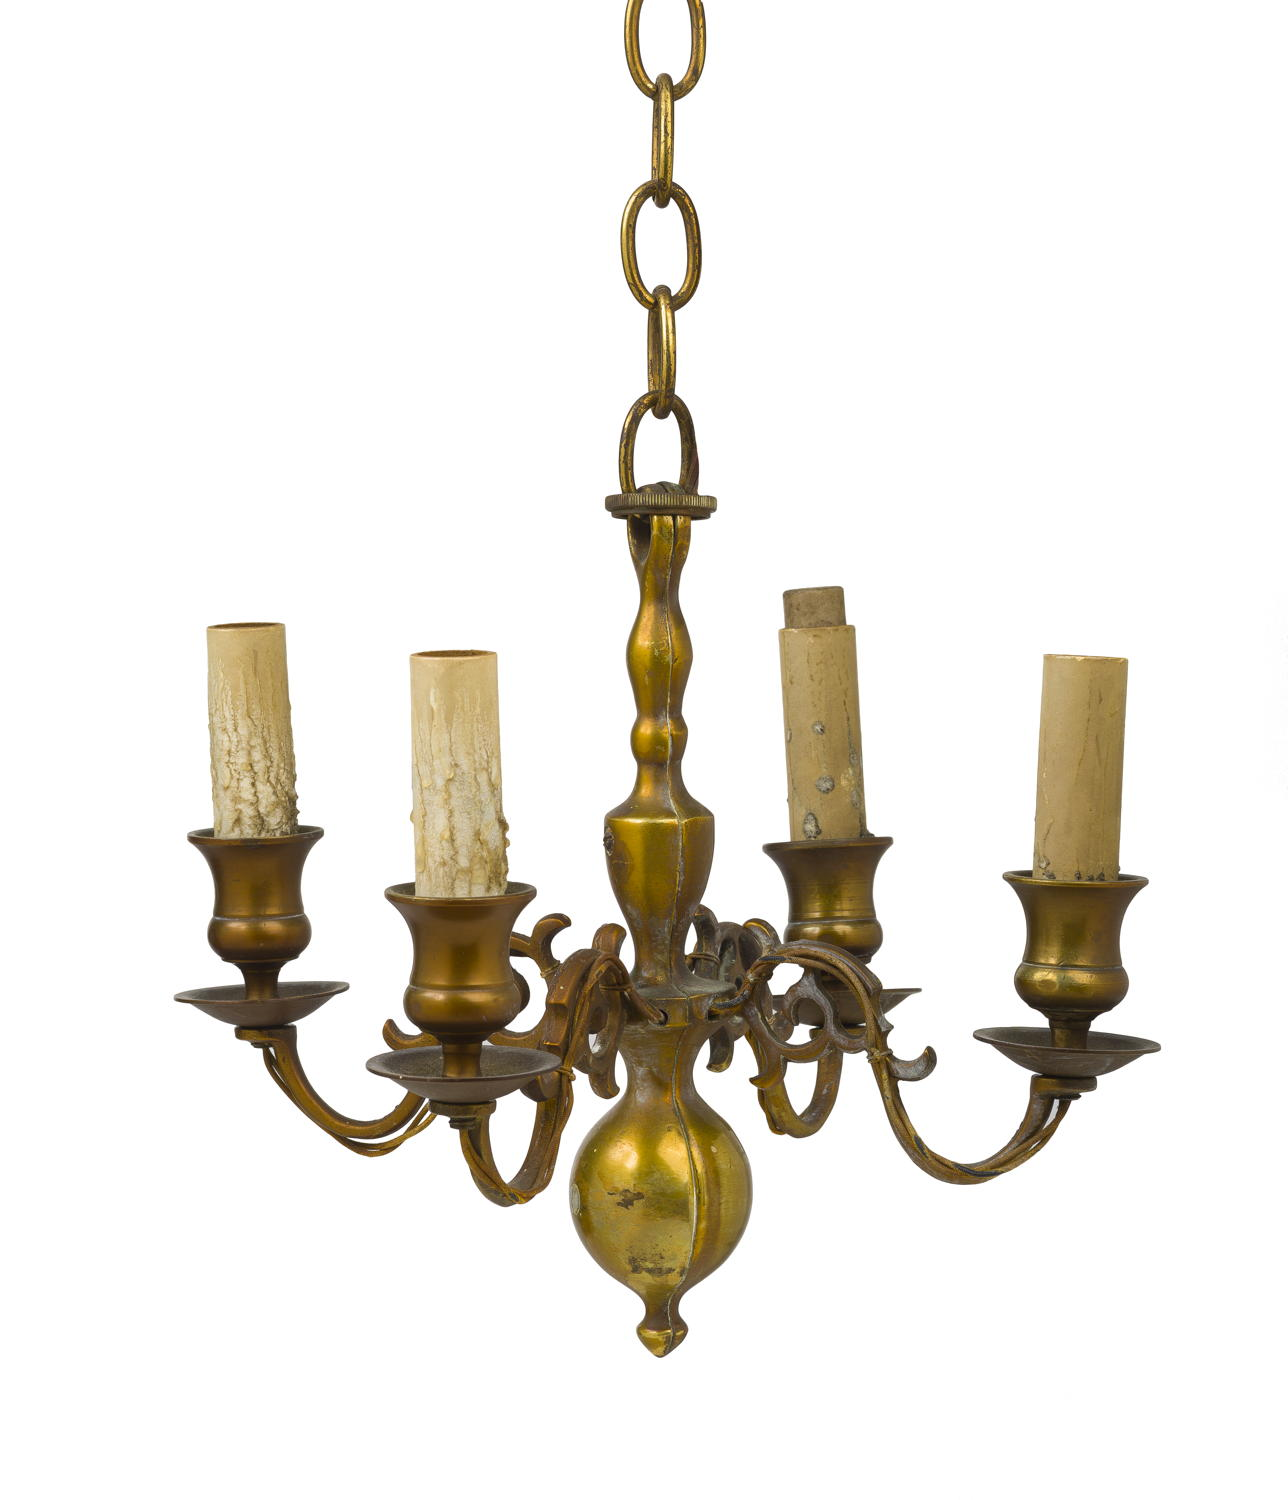 Continental Brass Four Light Chandelier With Baer Stem Large Ball Drop At Bottom Scrollwork Arms Fitted Candle Cups And Bobeche